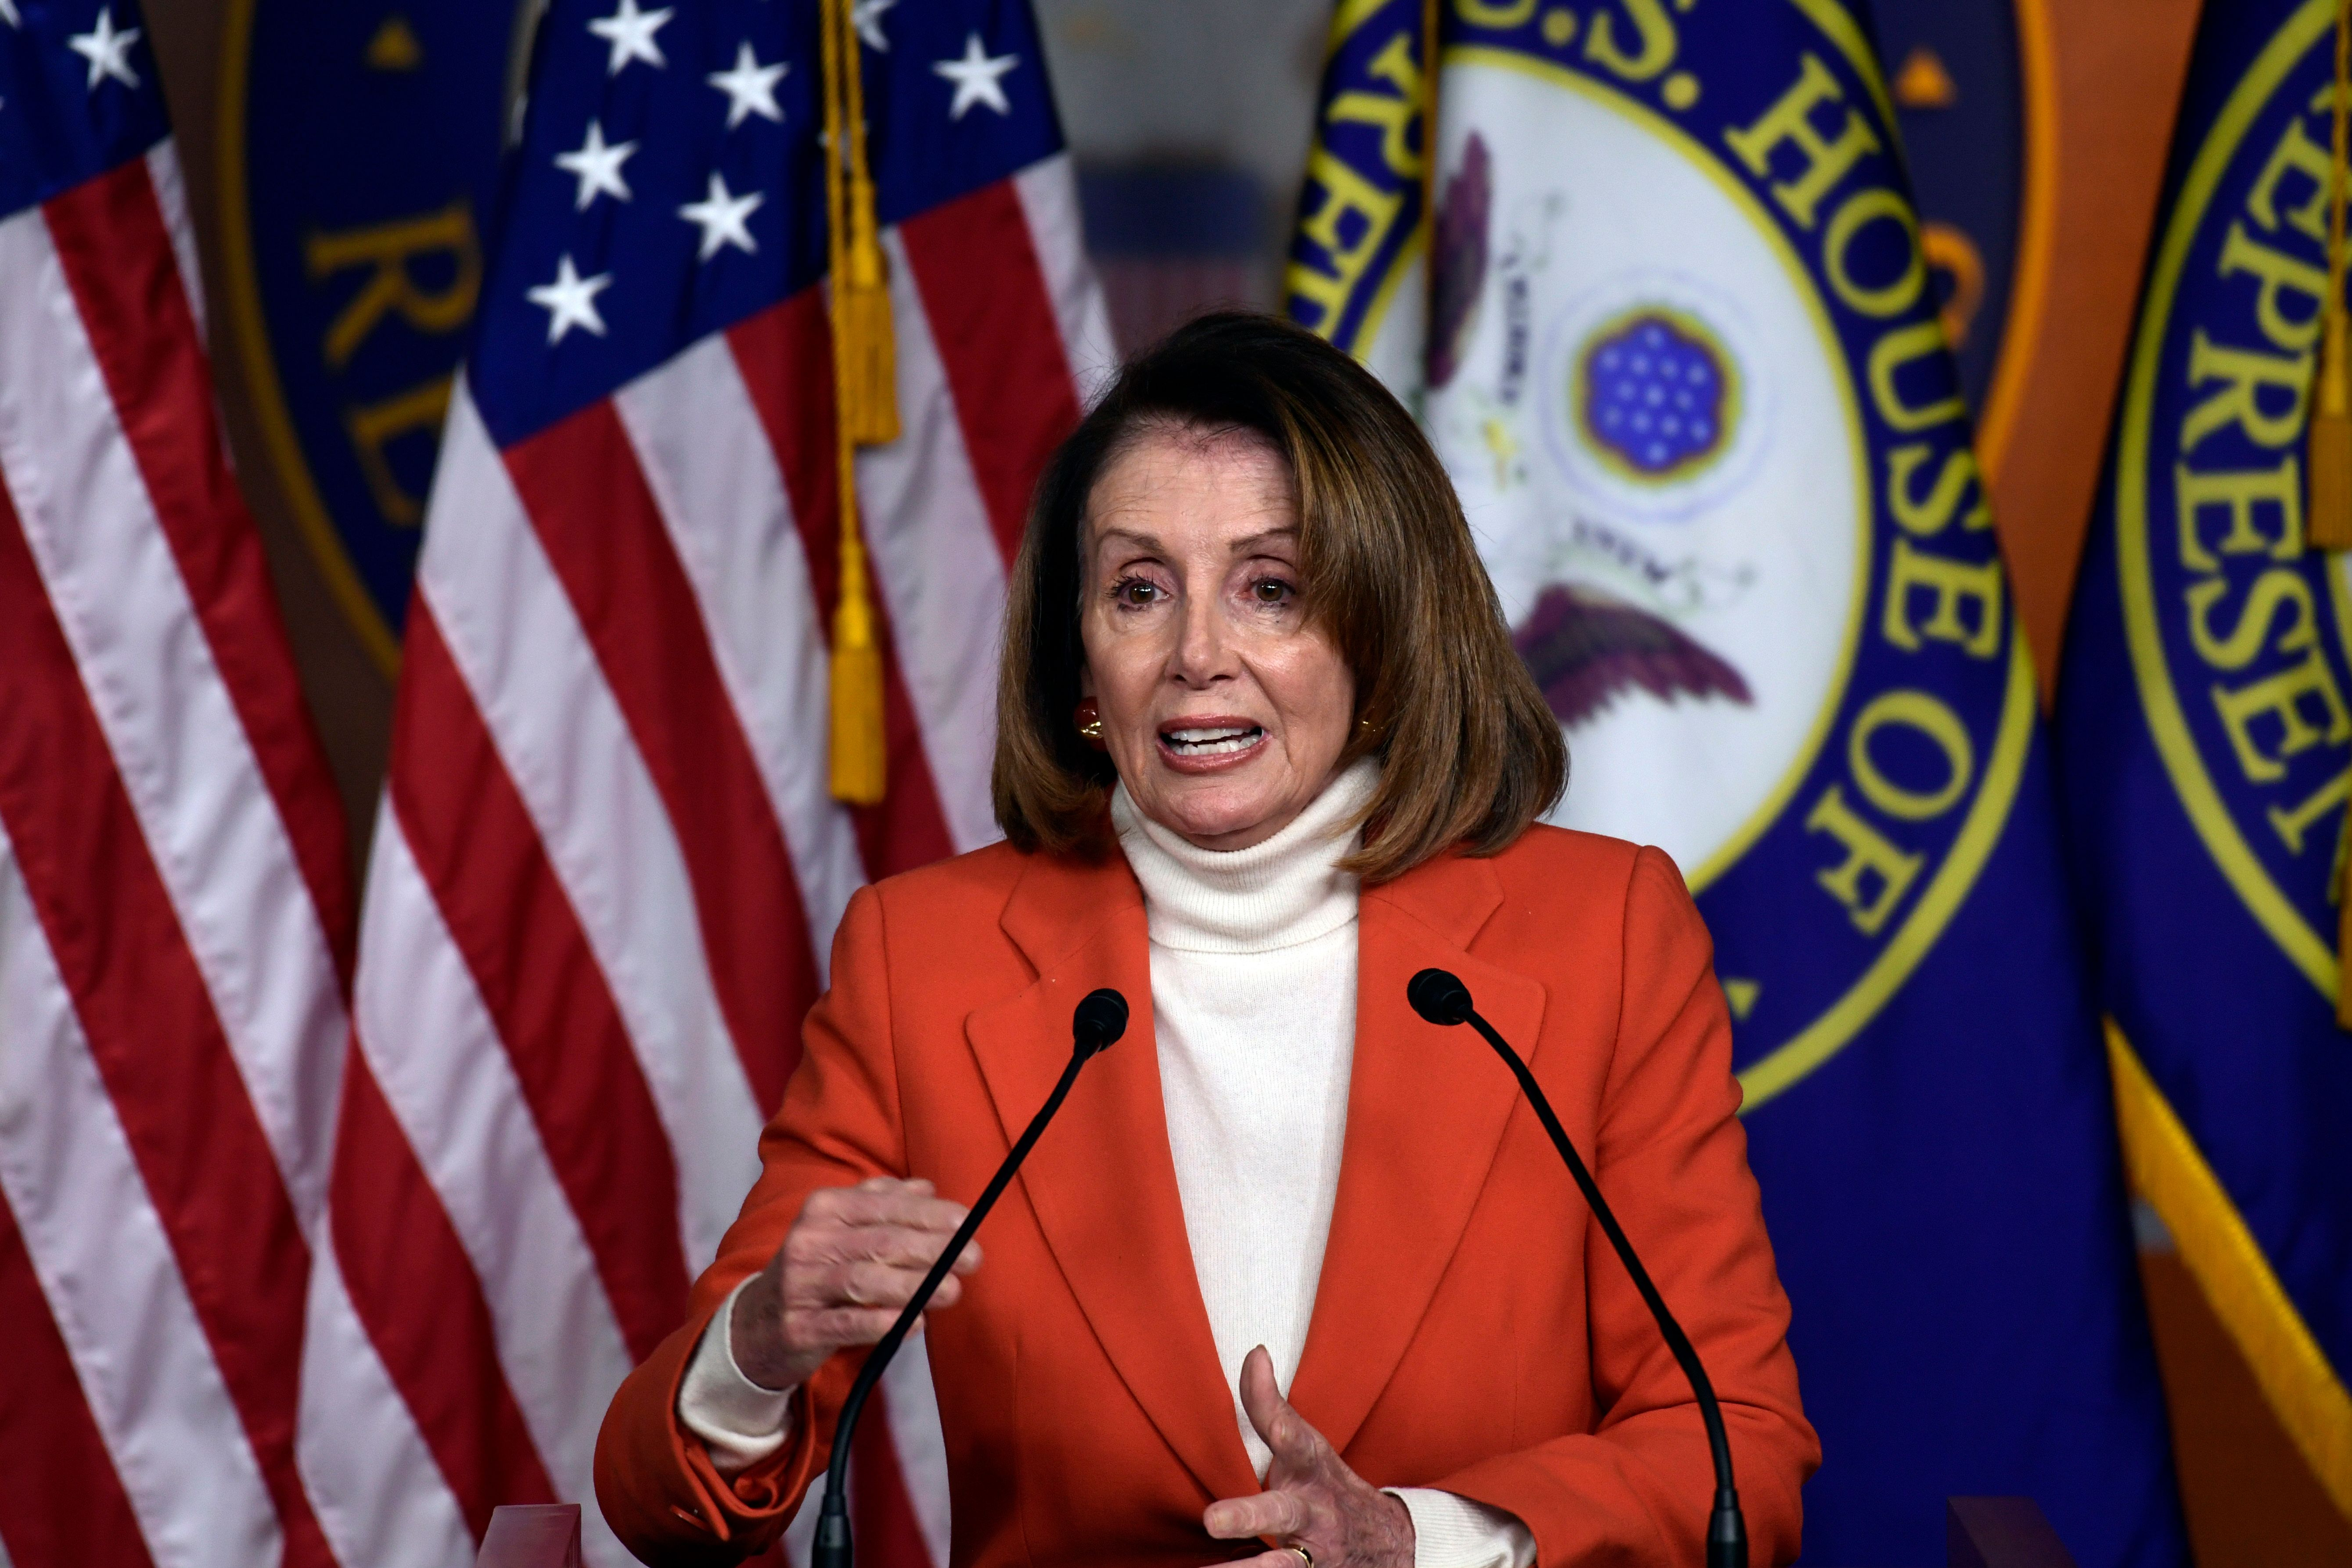 House Minority Leader Nancy Pelosi of Calif., speaks during a news conference on Capitol Hill in Washington, Thursday, Nov. 15, 2018. (AP Photo/Susan Walsh)